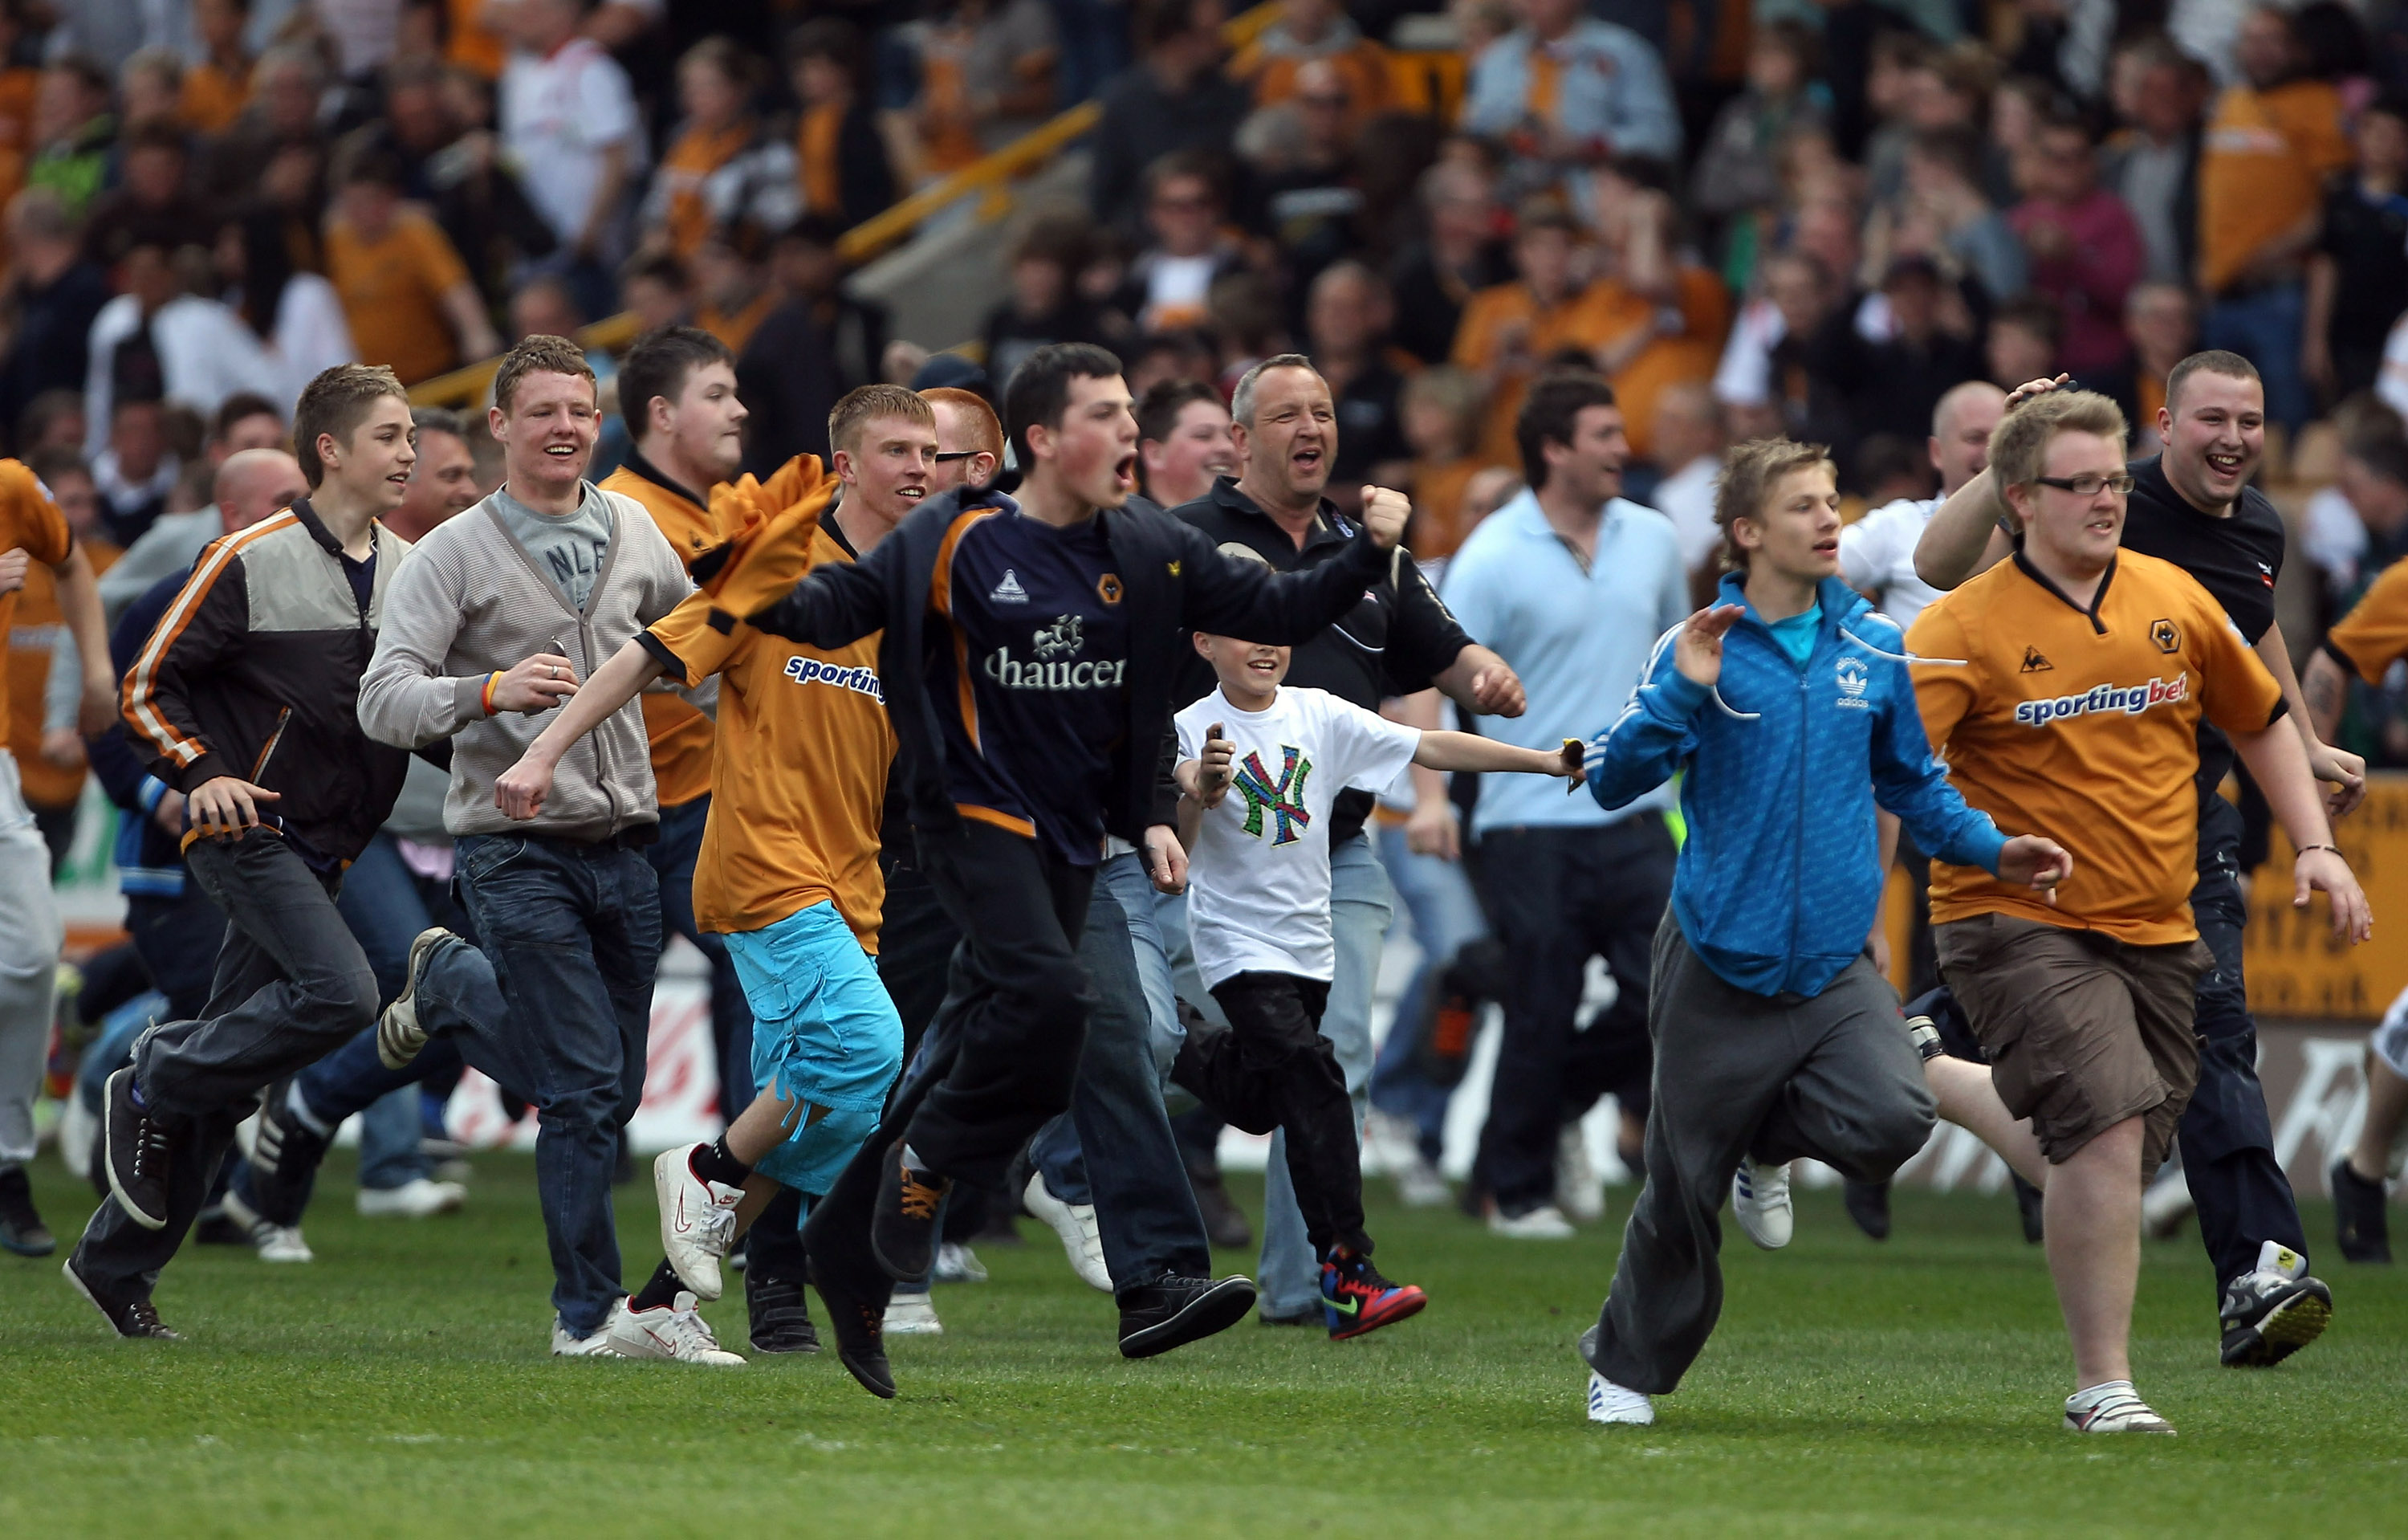 WOLVERHAMPTON, ENGLAND - APRIL 24:  Fans storm the pitch after the Barclays Premier League match between Wolverhampton Wanderers and Blackburn Rovers at Molineux on April 24, 2010 in Wolverhampton, England.  (Photo by Ian Walton/Getty Images)